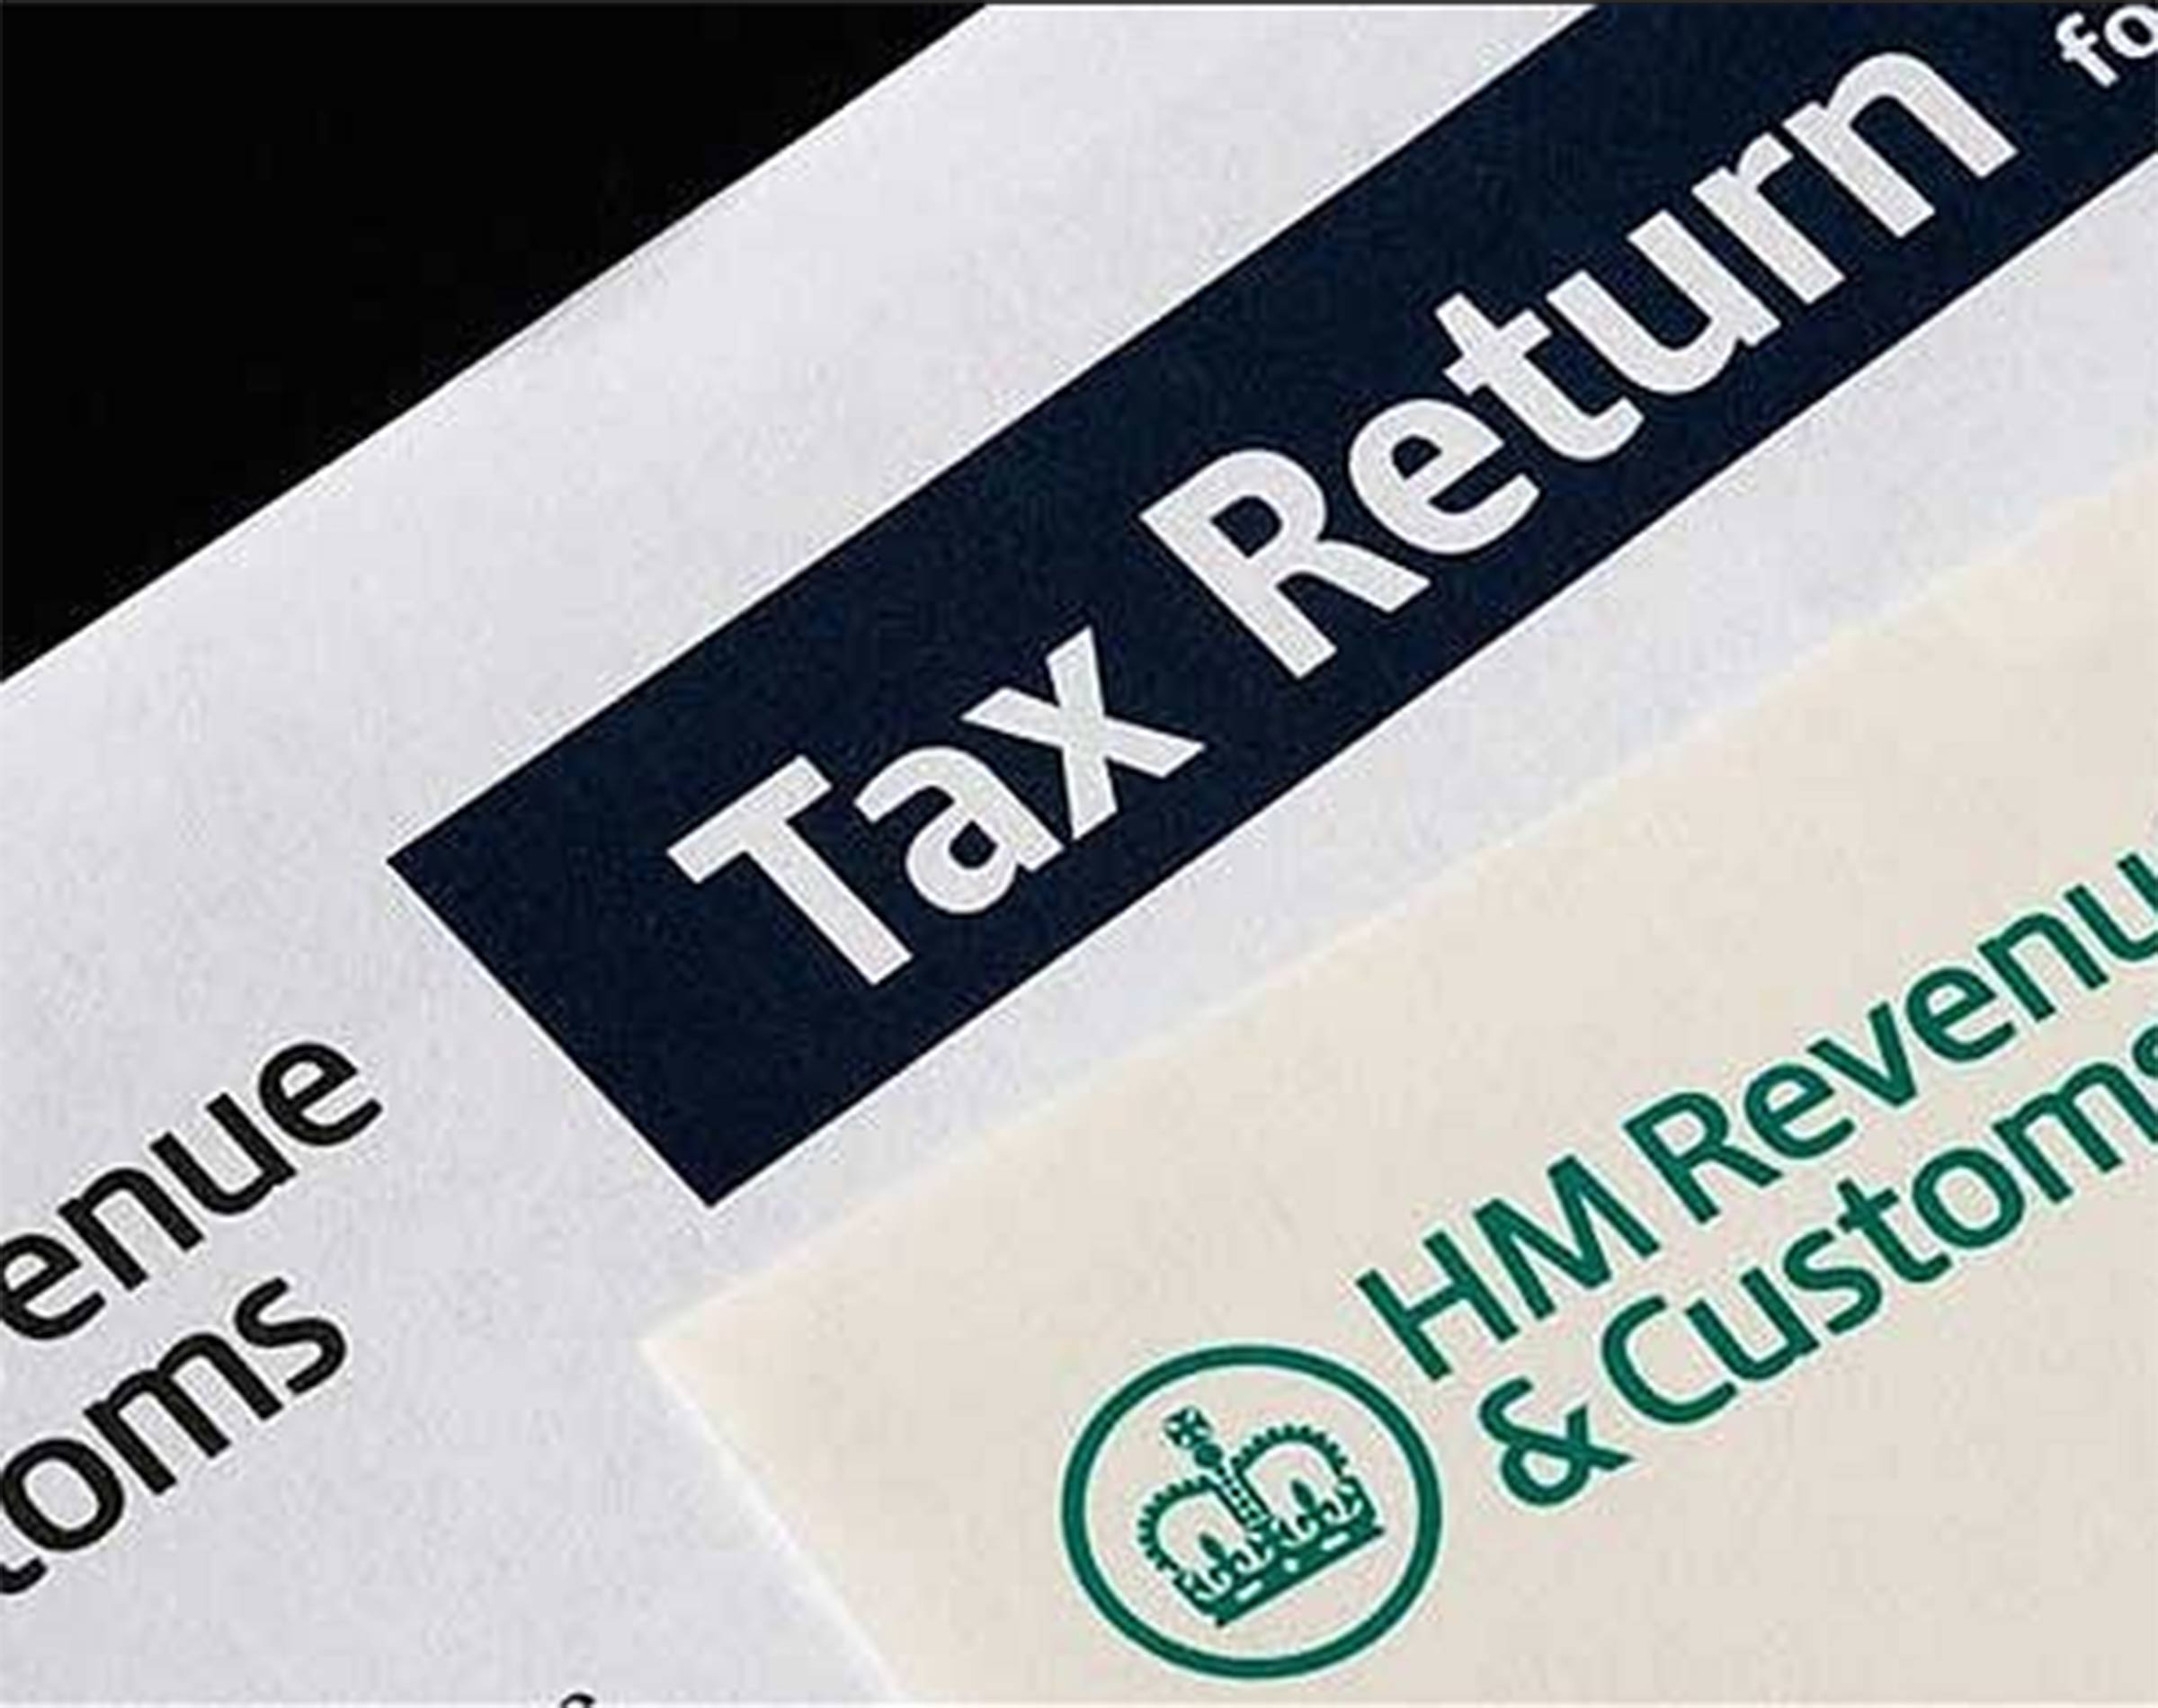 Accounted For HMRC returns compliance services